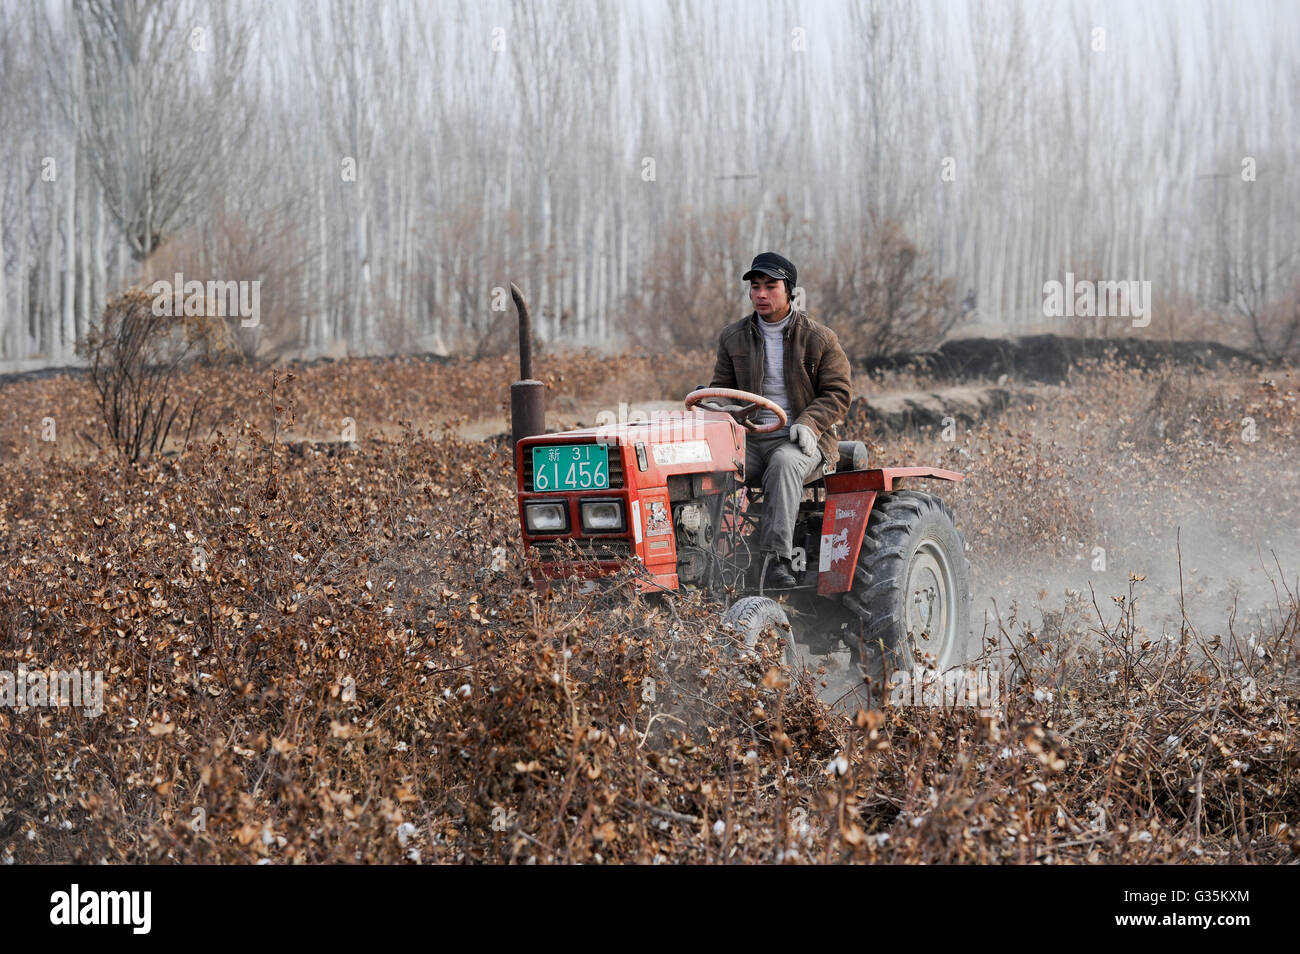 CHINA province Xinjing Kashgar , uyghur farmer with tractor removes cotton plants after harvest in farm - Stock Image